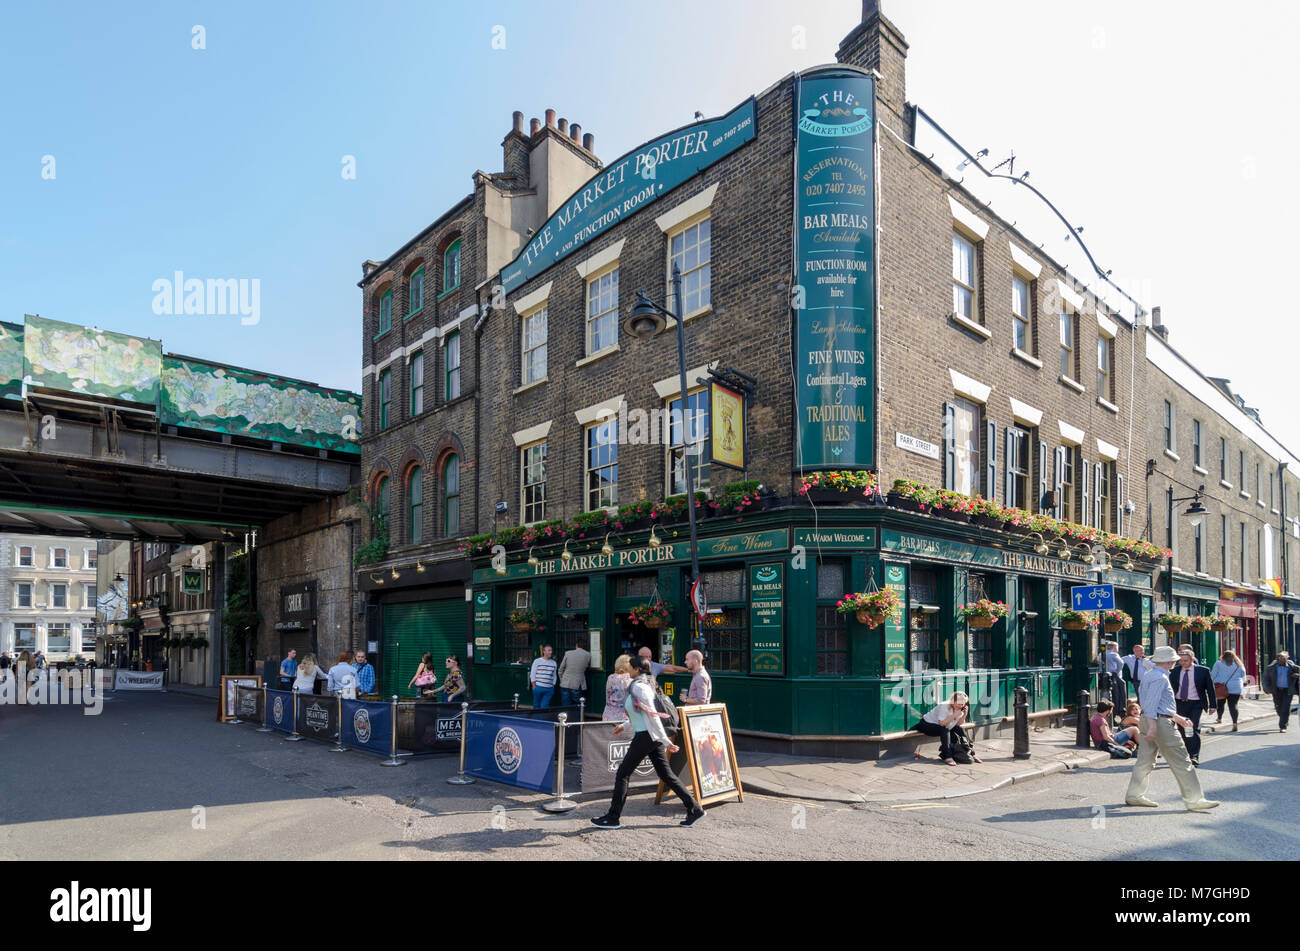 The Market Porter pub, Borough Market, Southwark, London, UK - Stock Image